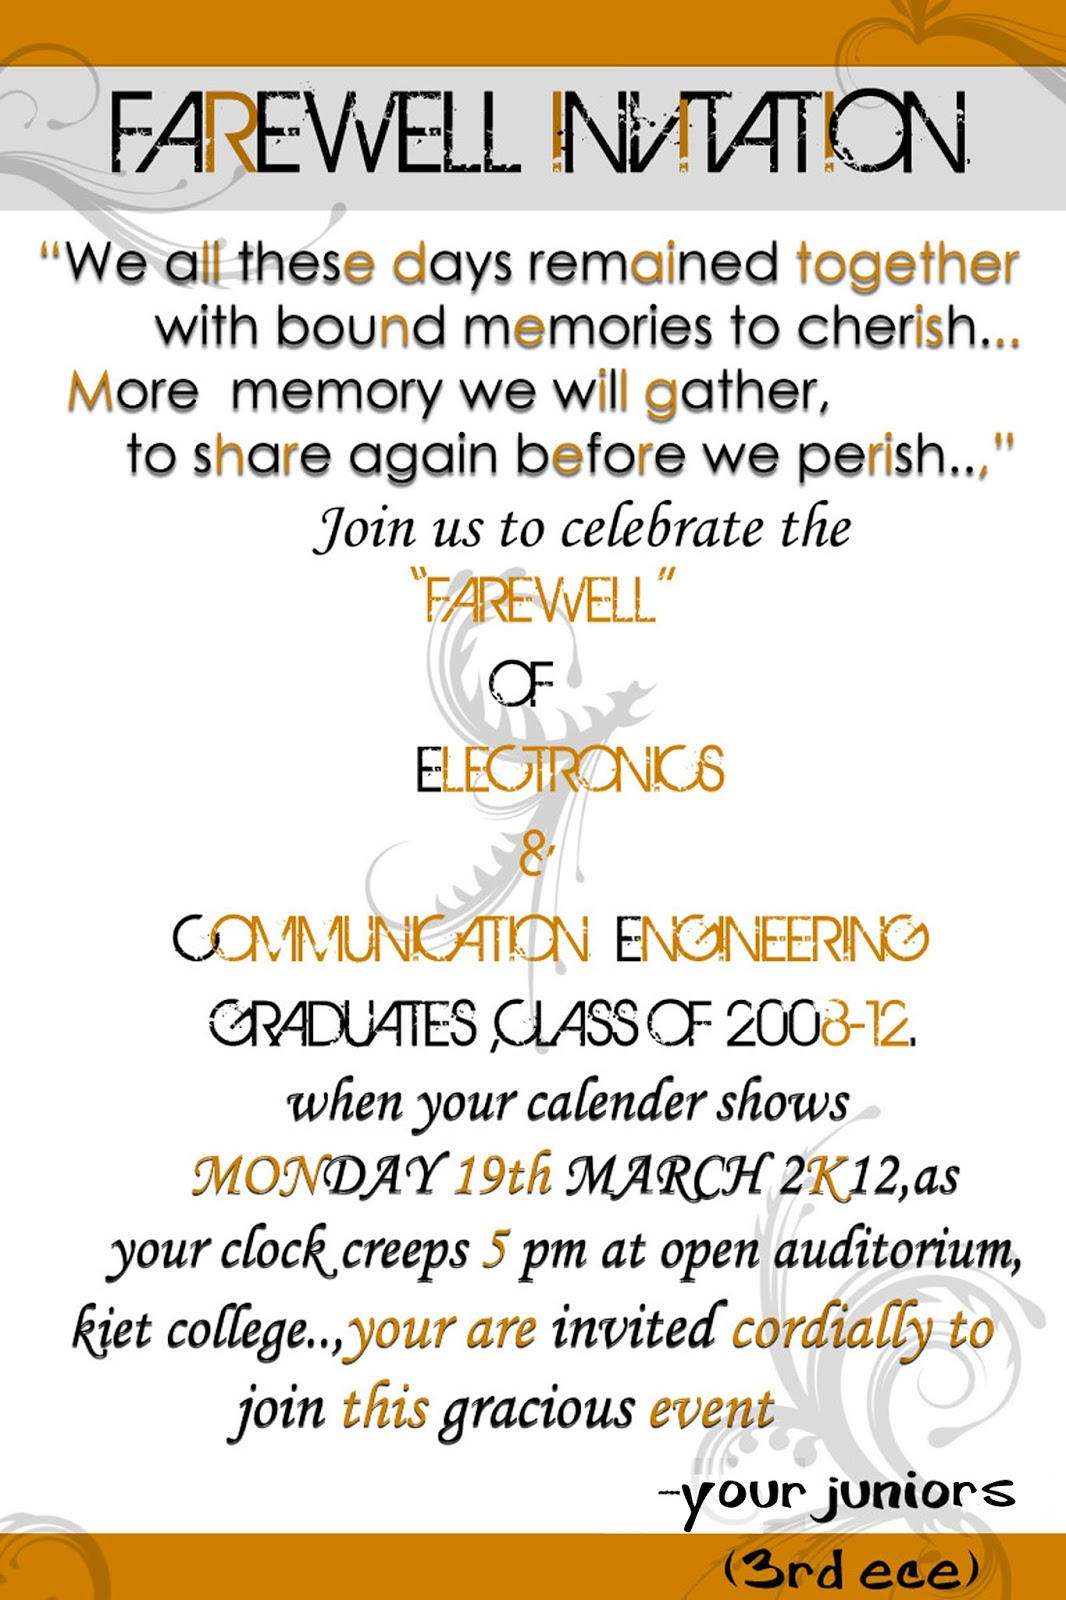 Farewell Invitation For Students with awesome invitations layout